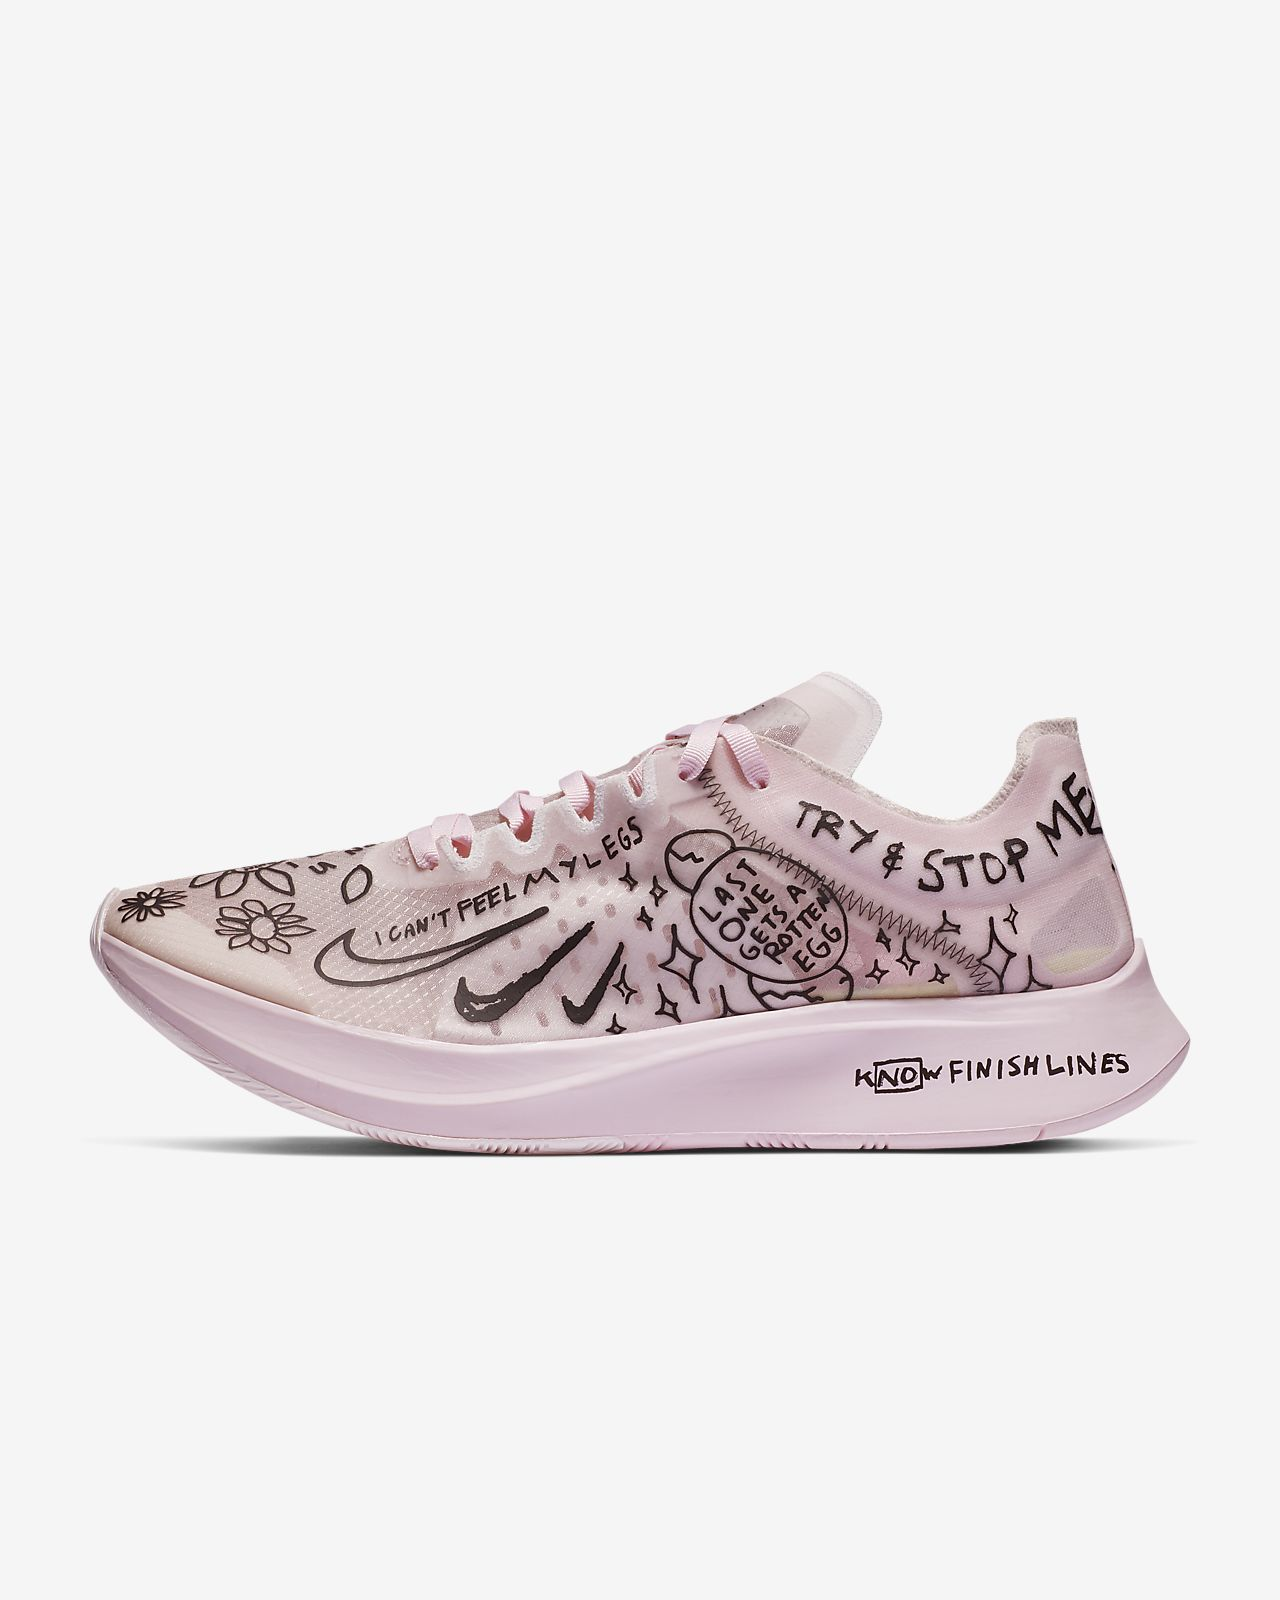 Nike Zoom Fly SP Fast Nathan Bell Hardloopschoen